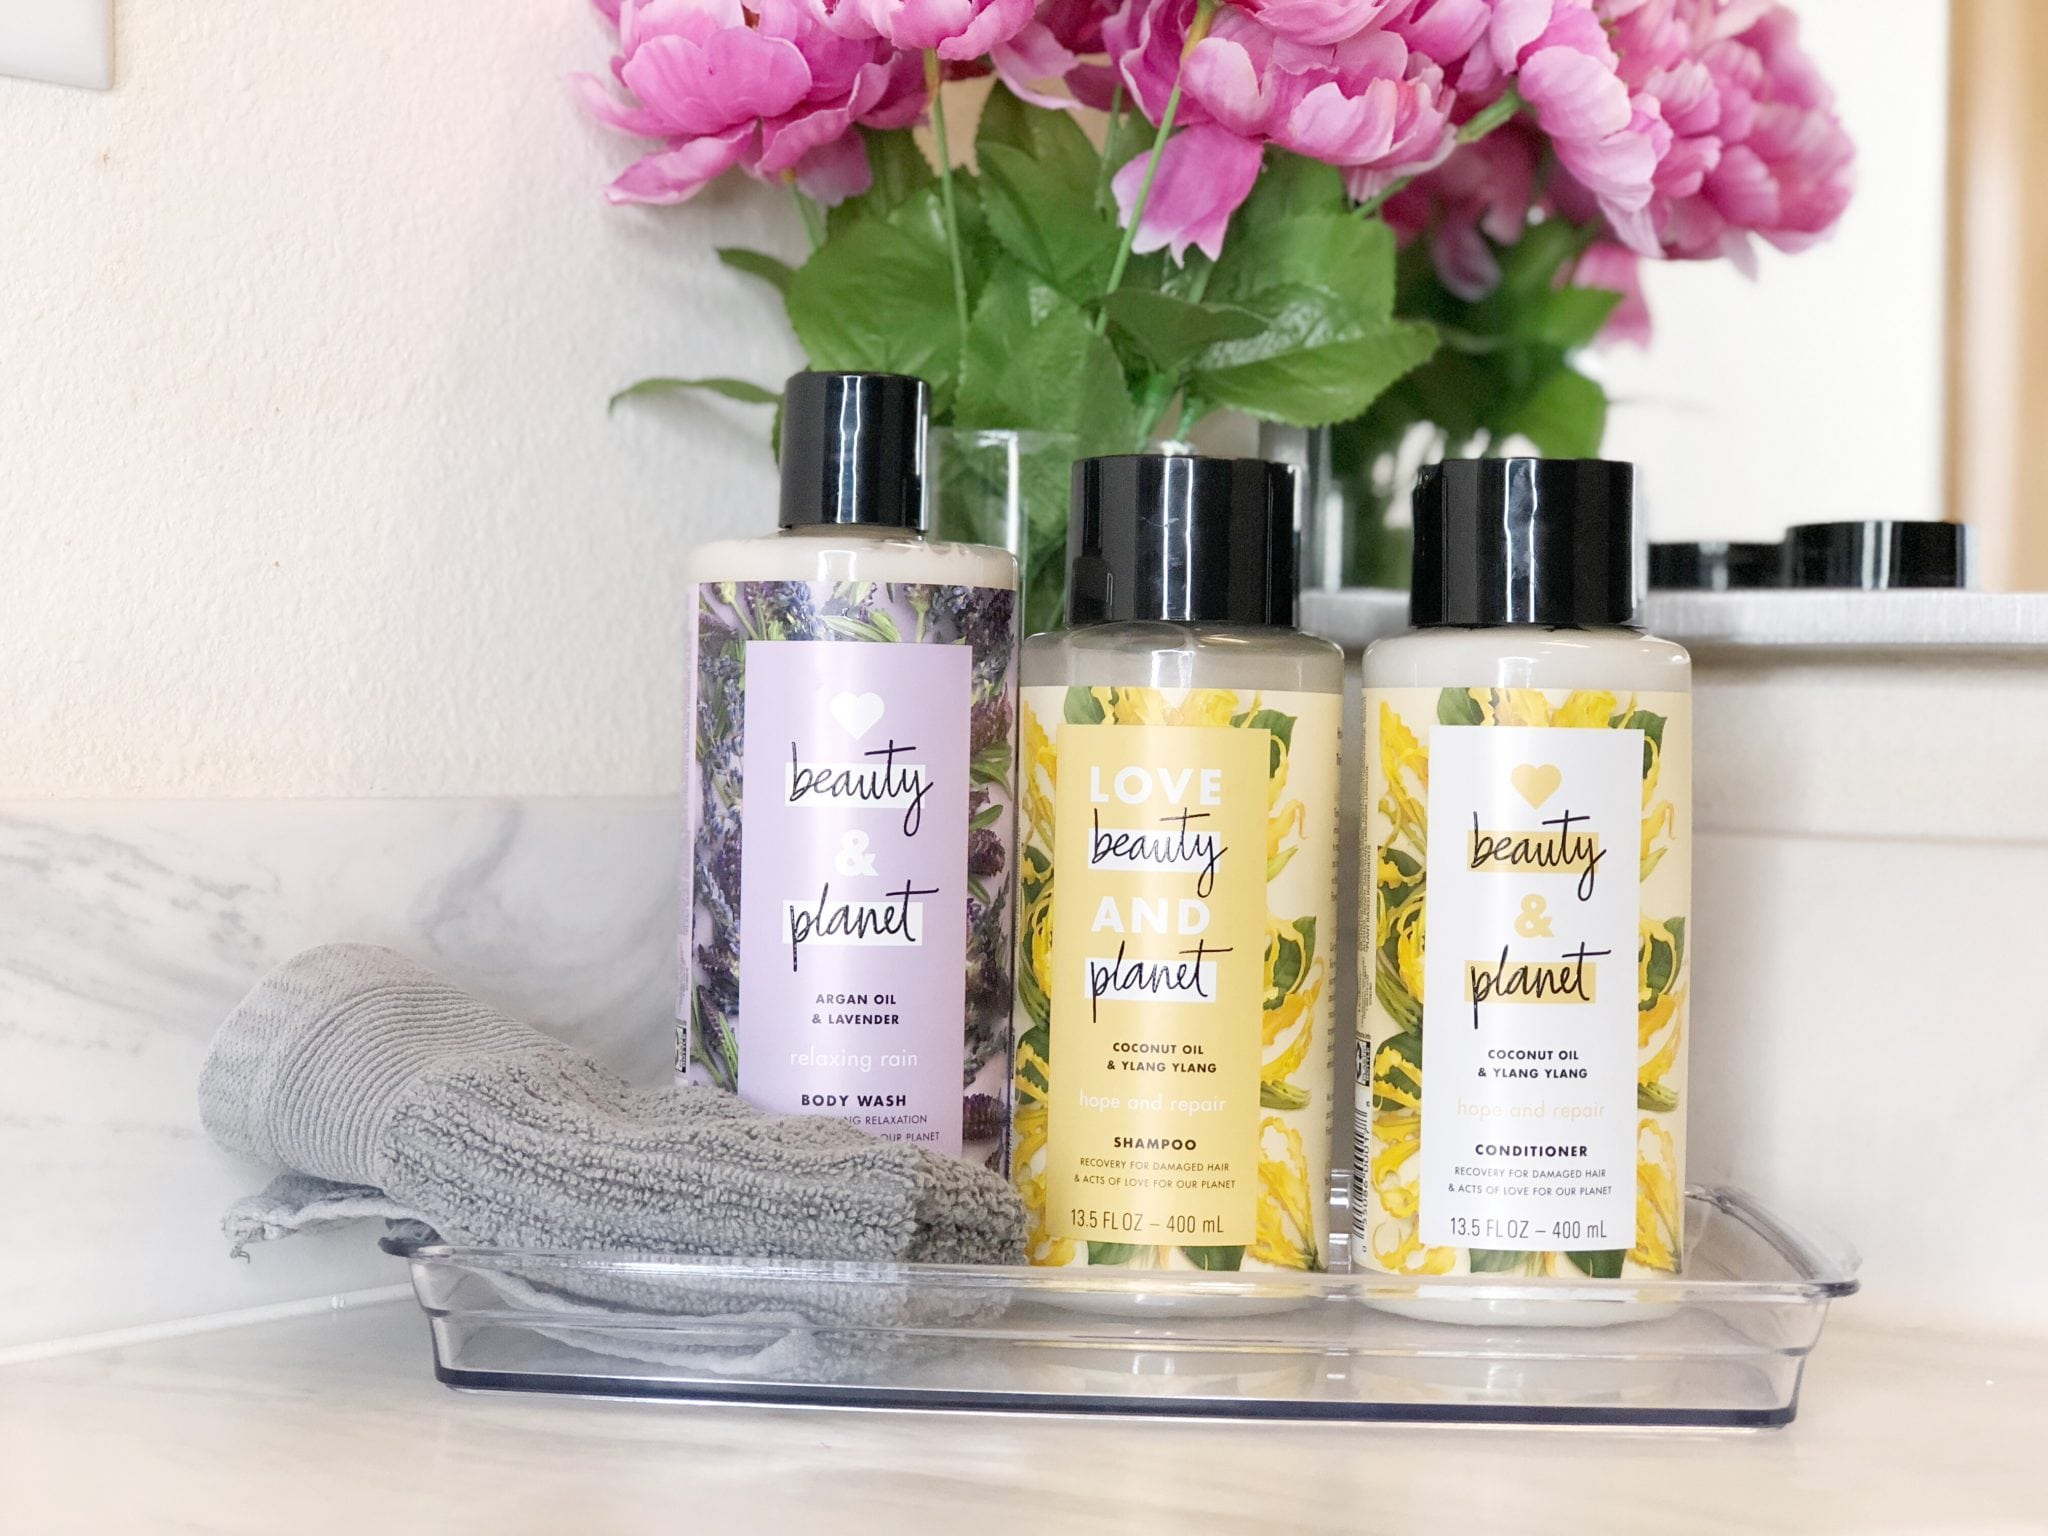 New Eco-Friendly Shower Products: Love Beauty and Planet